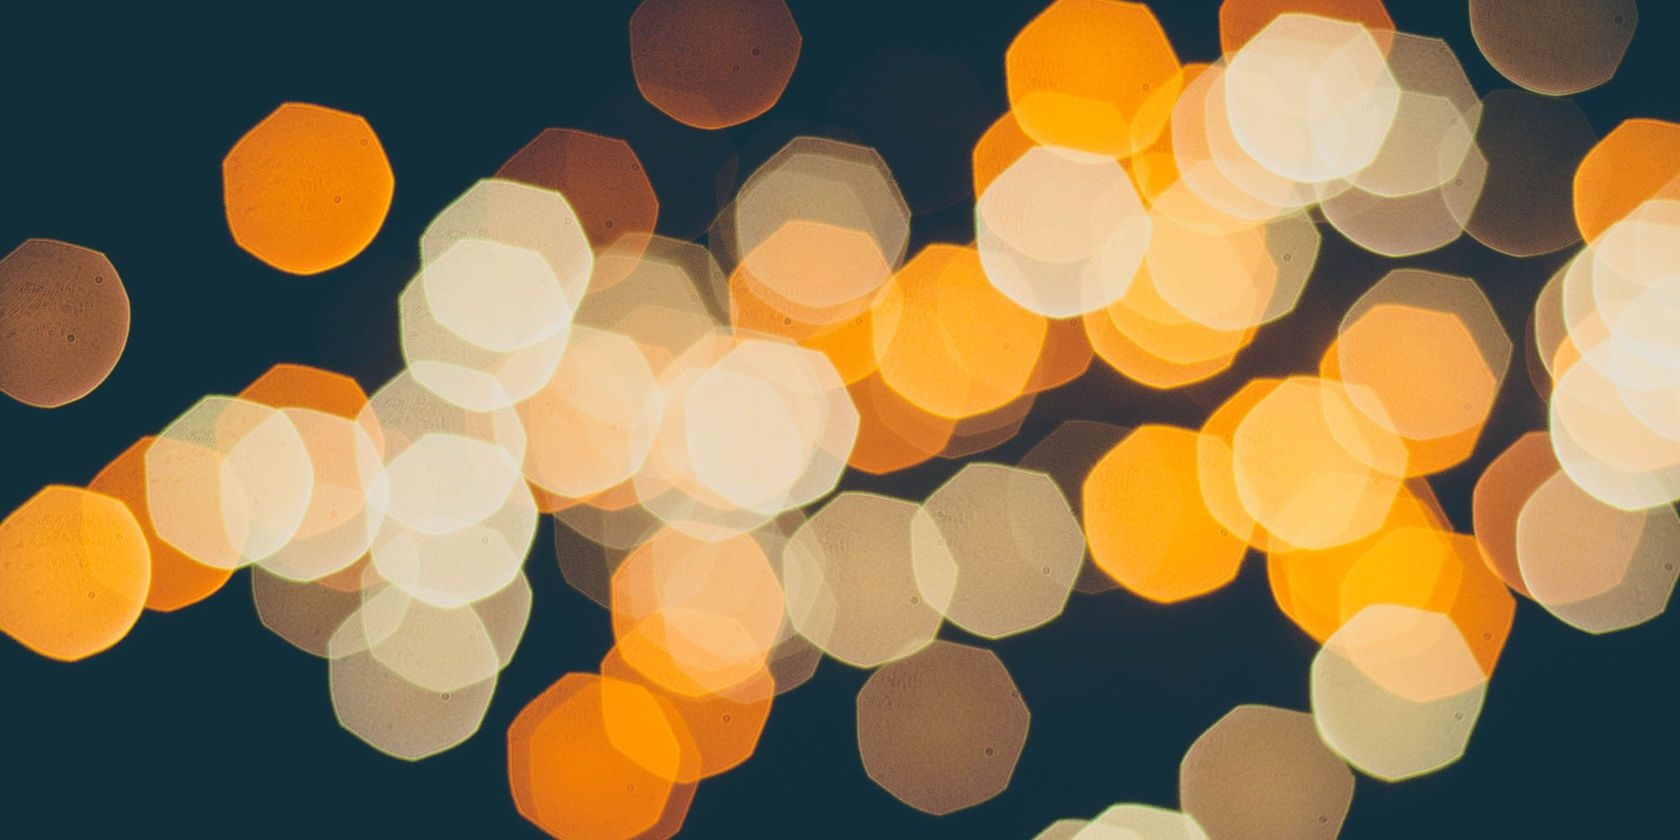 How to Create a DIY Filter for Custom Bokeh Shapes | MakeUseOf